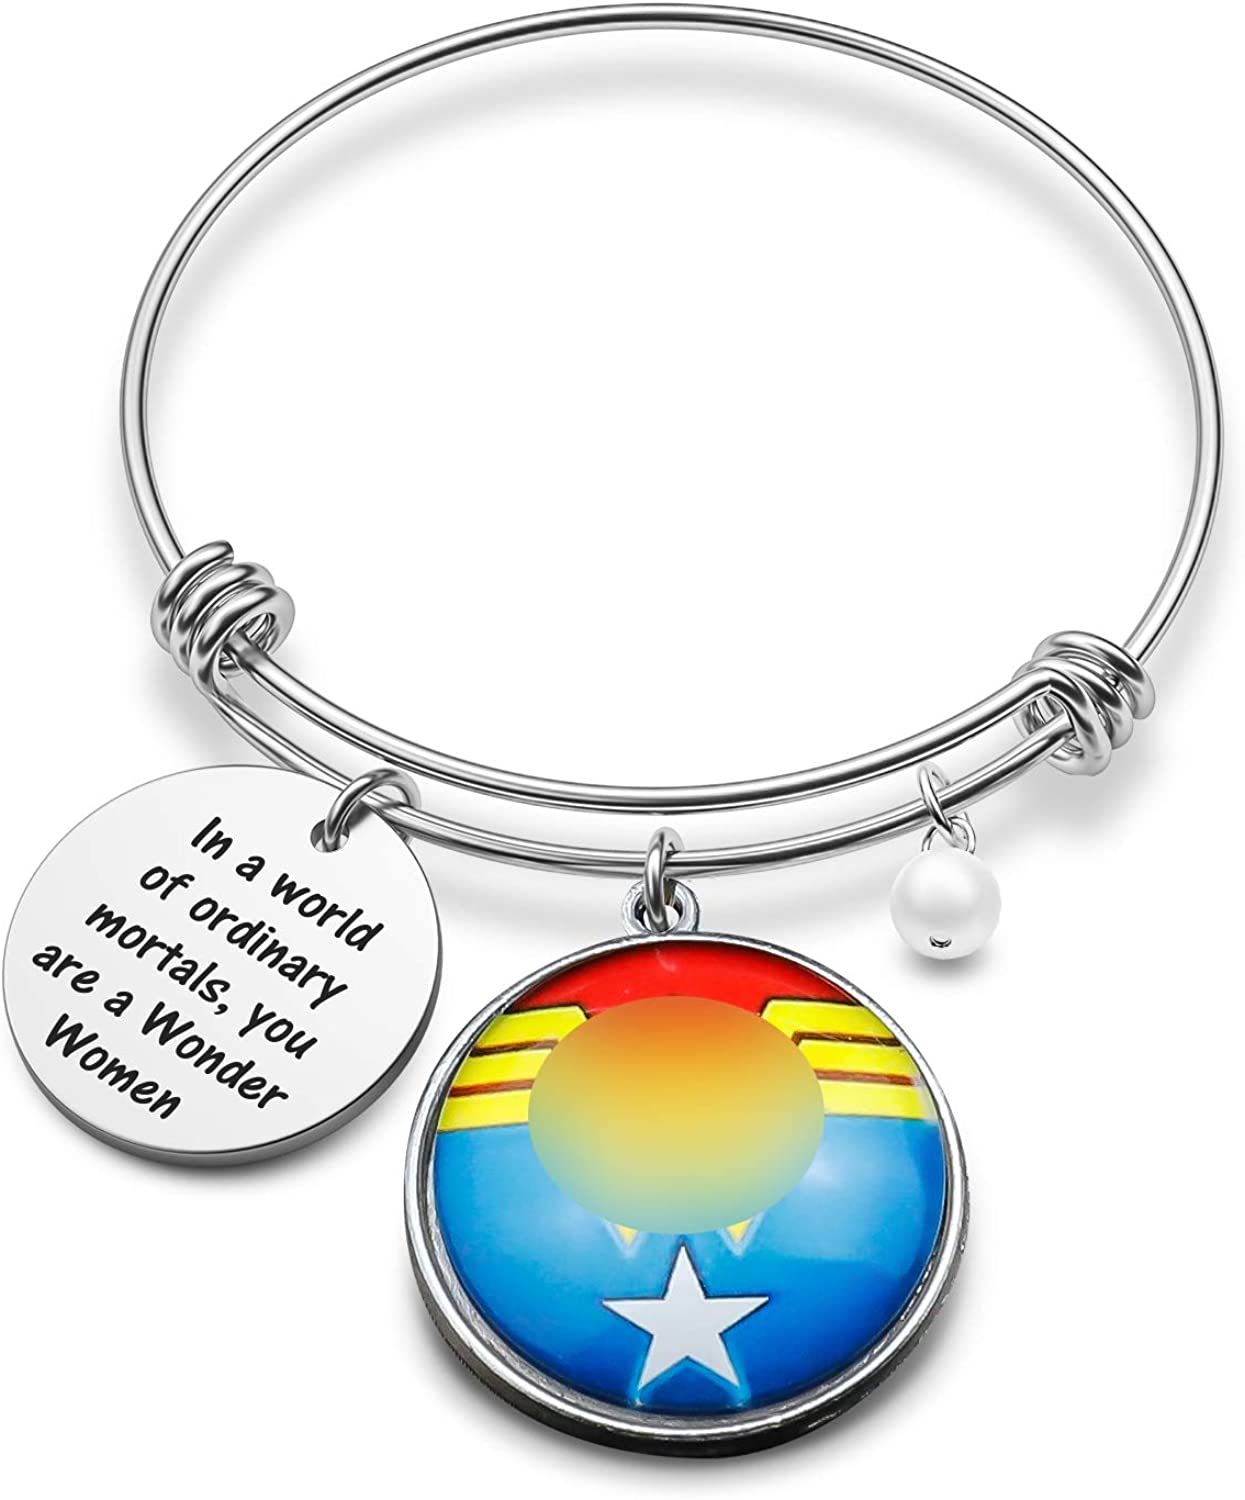 Wonder Women Inspired Bracelet Diana Prince Gift in a World of Ordinary Mortals You are a Wonder Women